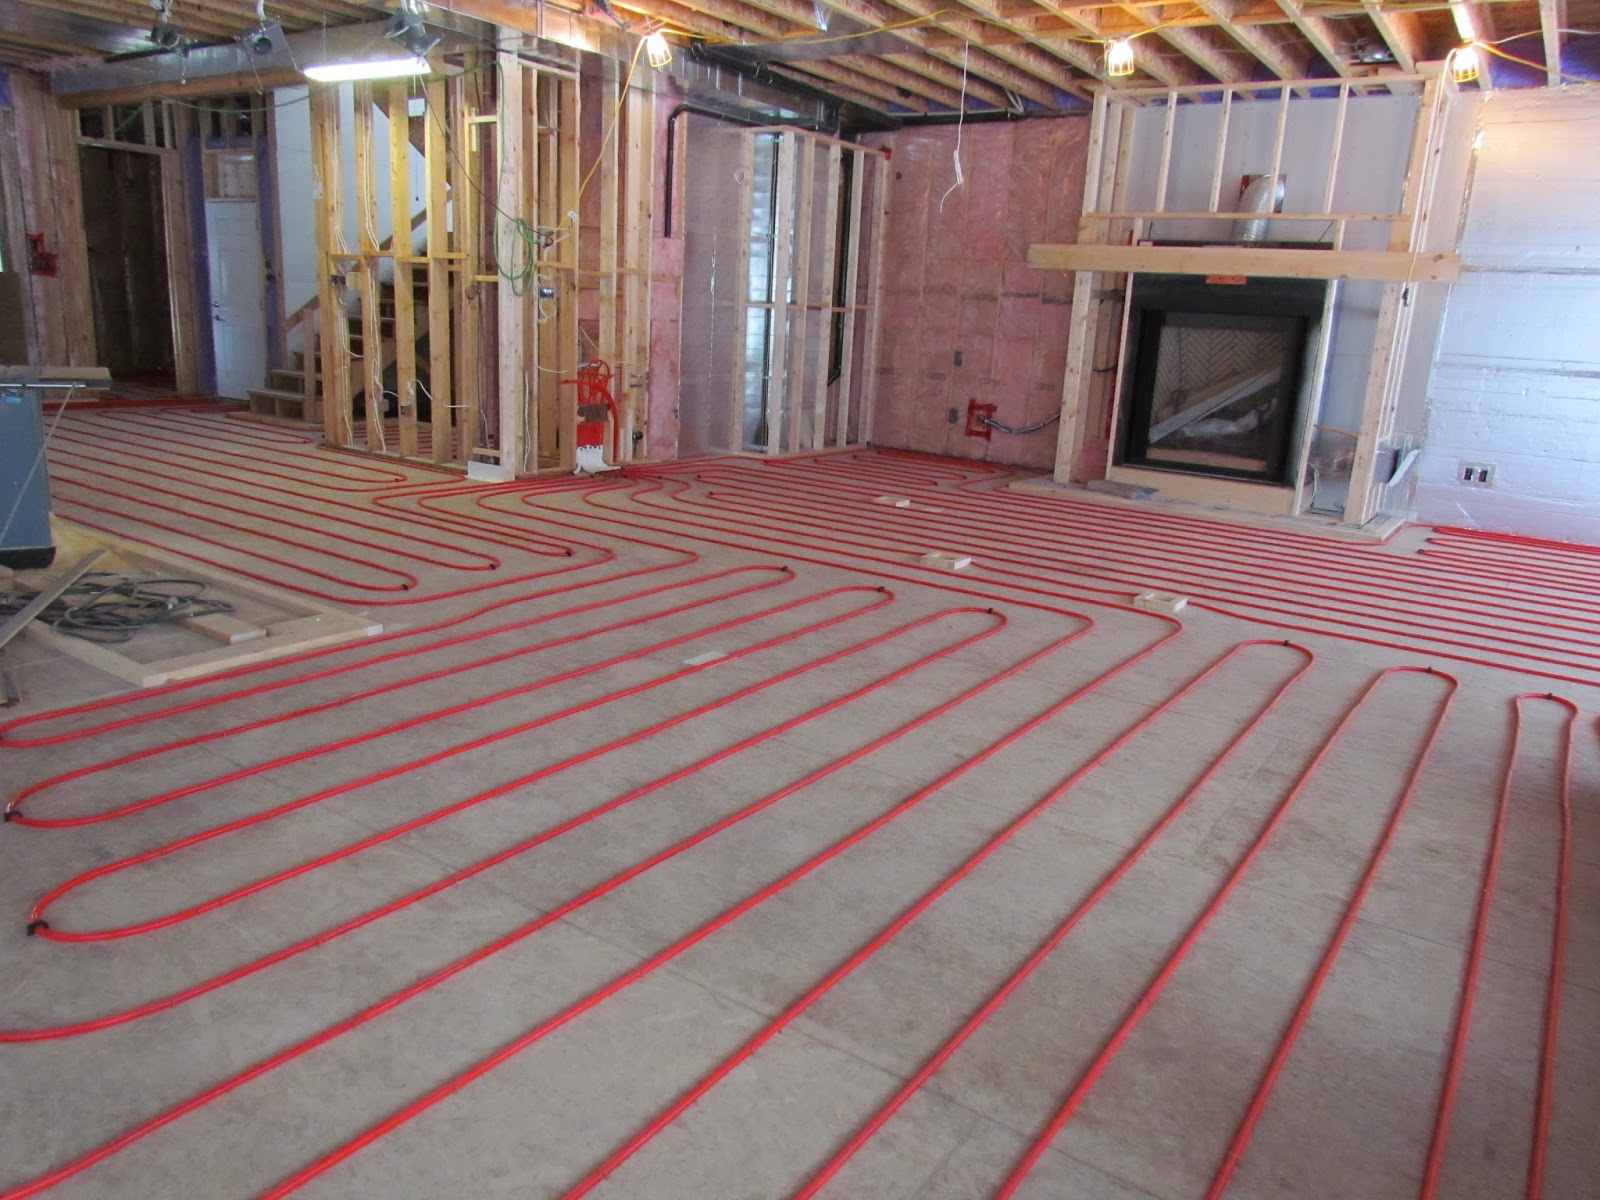 ask rob radiant in floor heating in the basement - Radiant Floor Heat